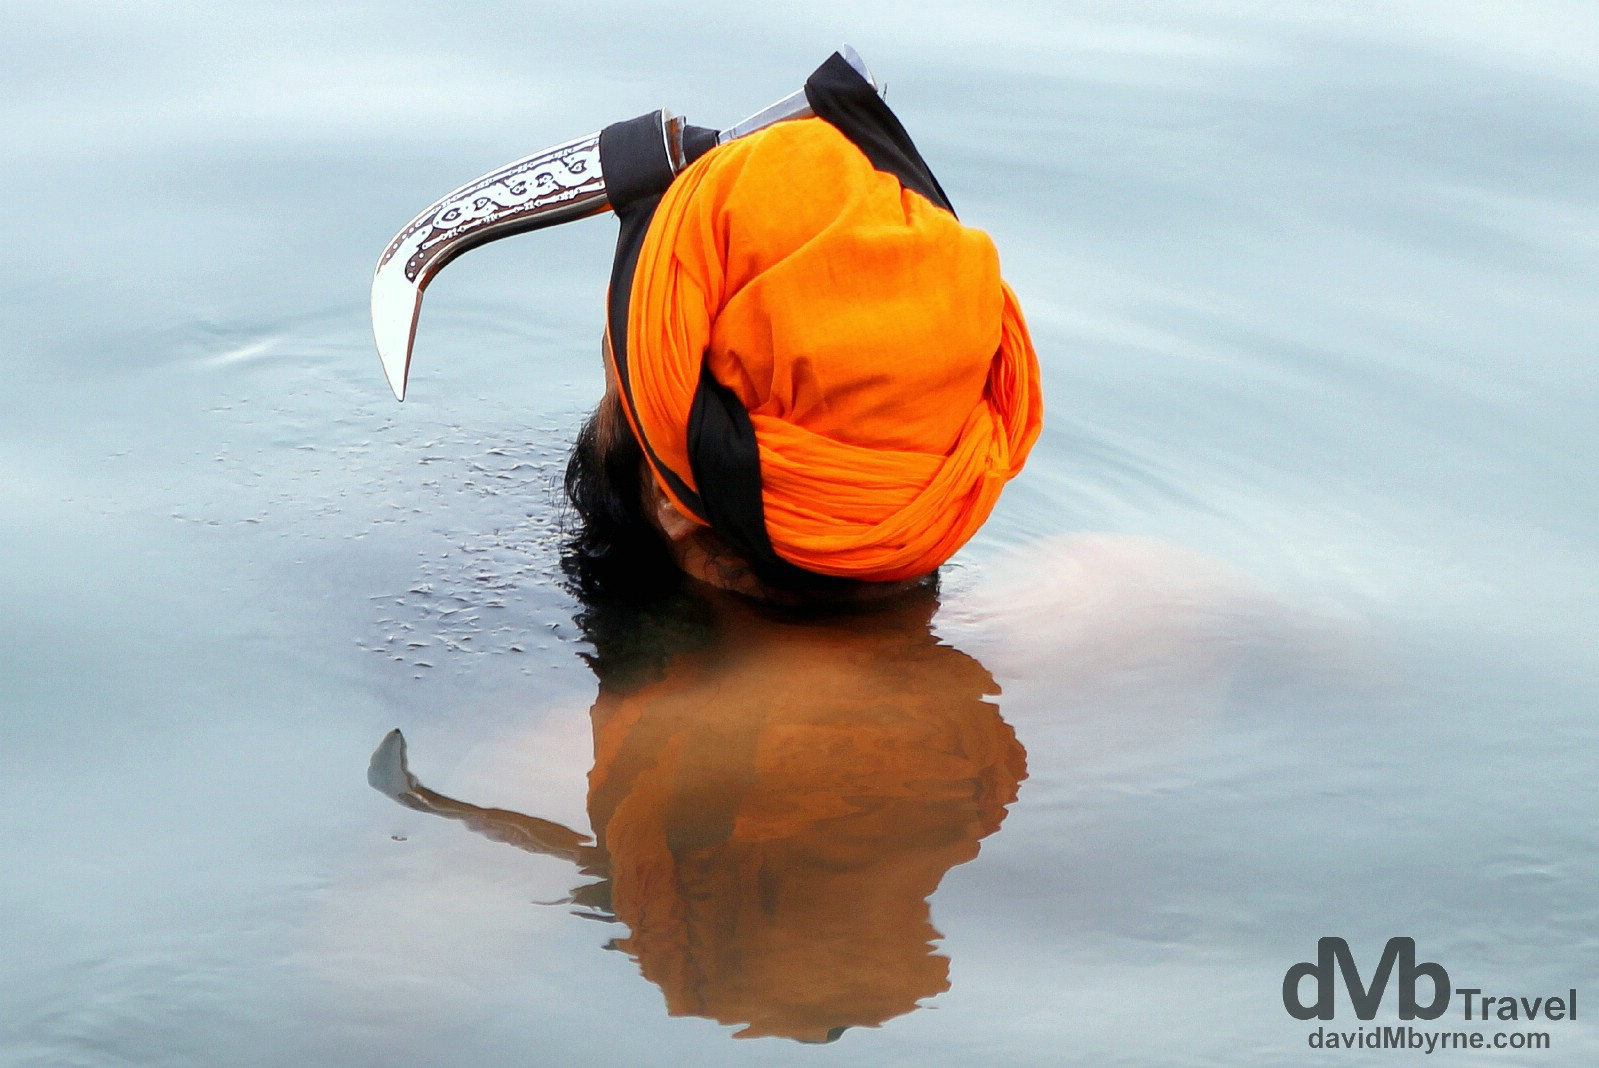 A Sikh devotee in the Amrit Sarovar (Pool of Nectar) in the Golden Temple complex, Amritsar, India. October 9th 2012.